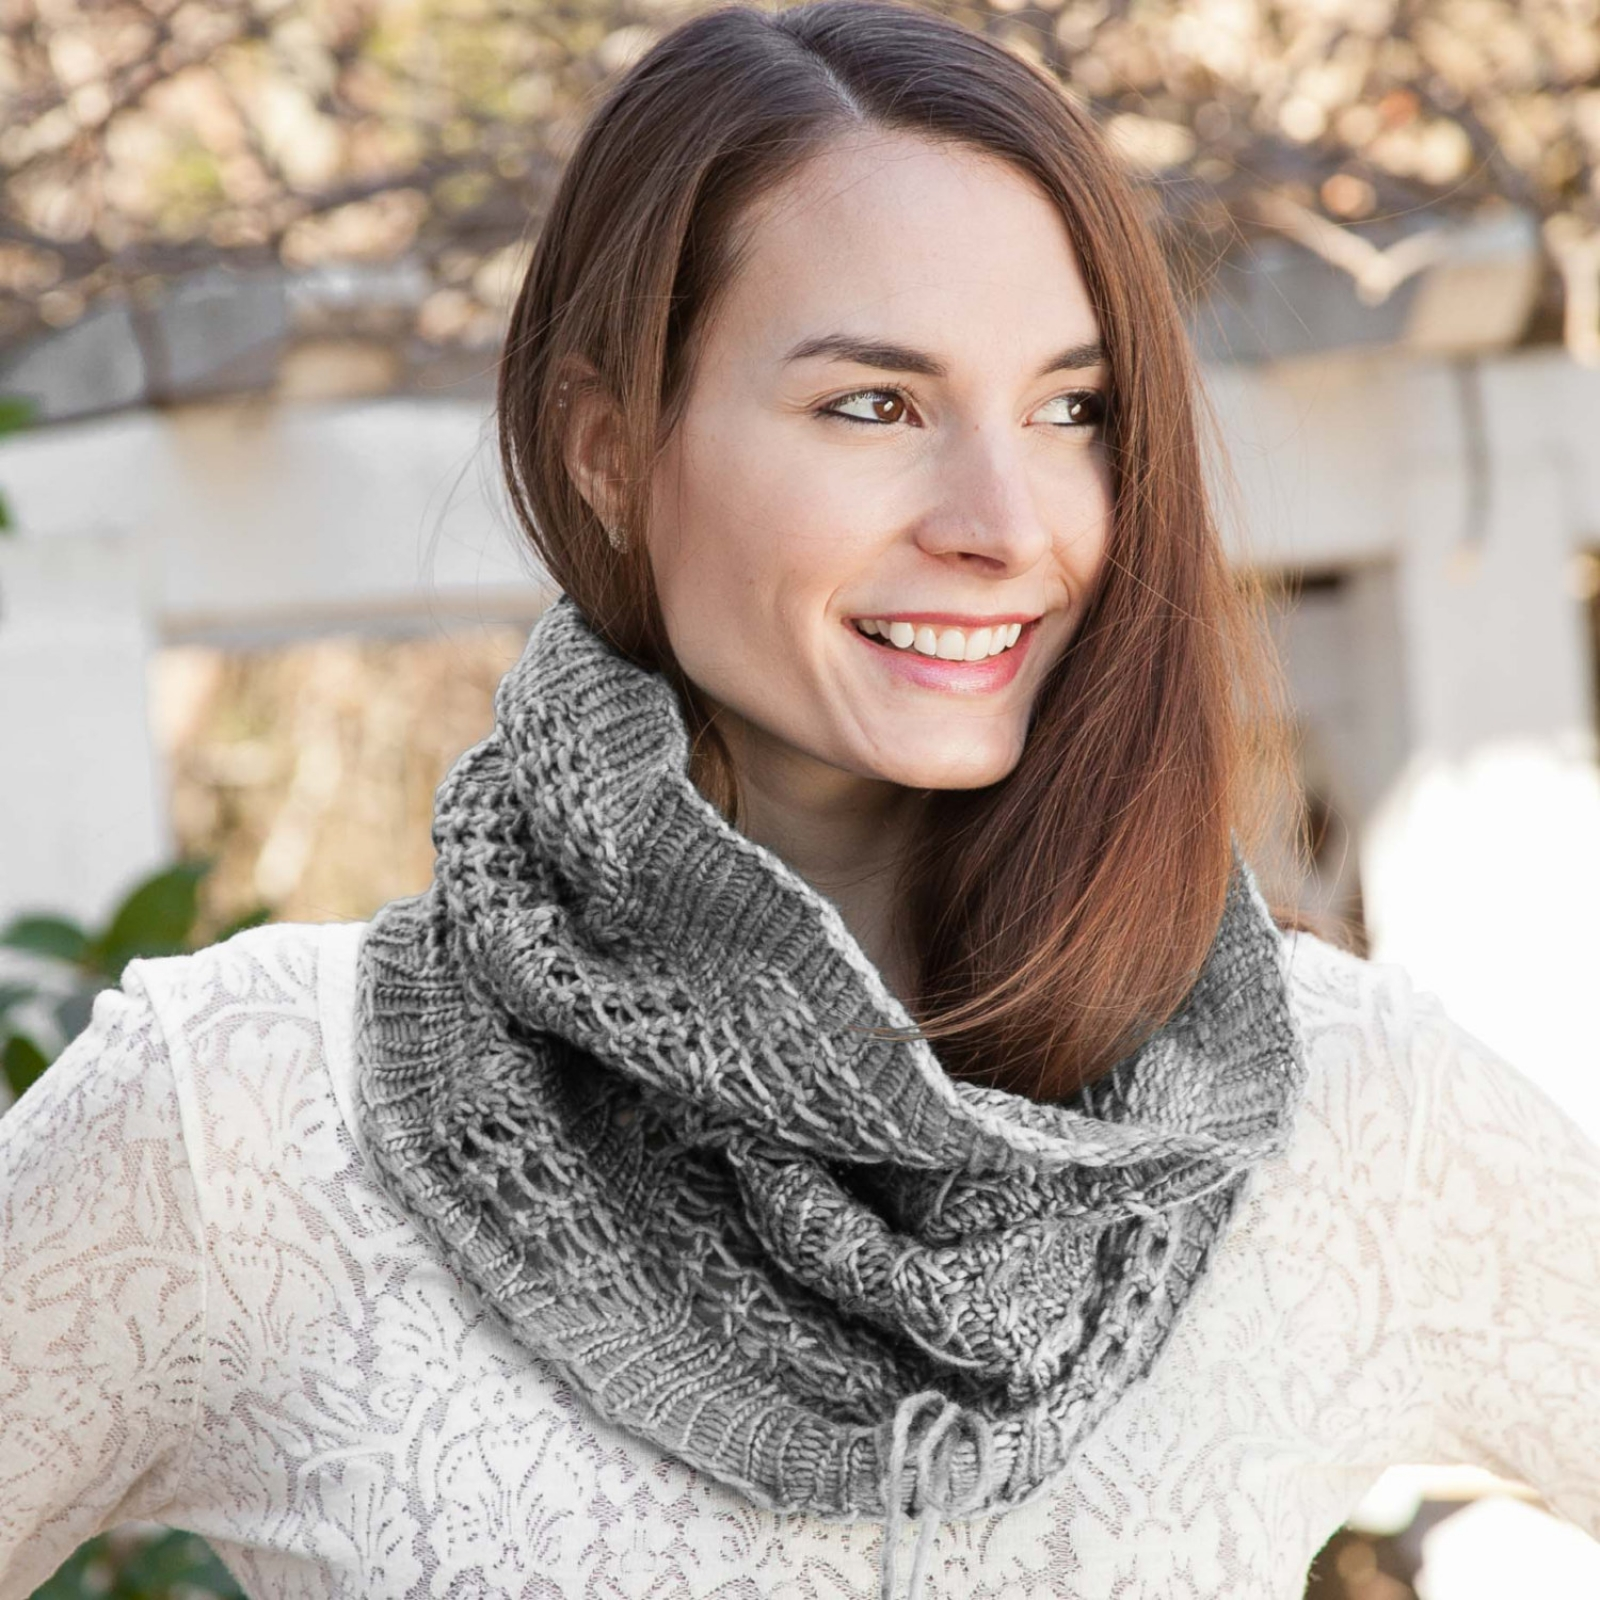 Loom Knit Lace Snood Cowl Pattern This Moment Is Good